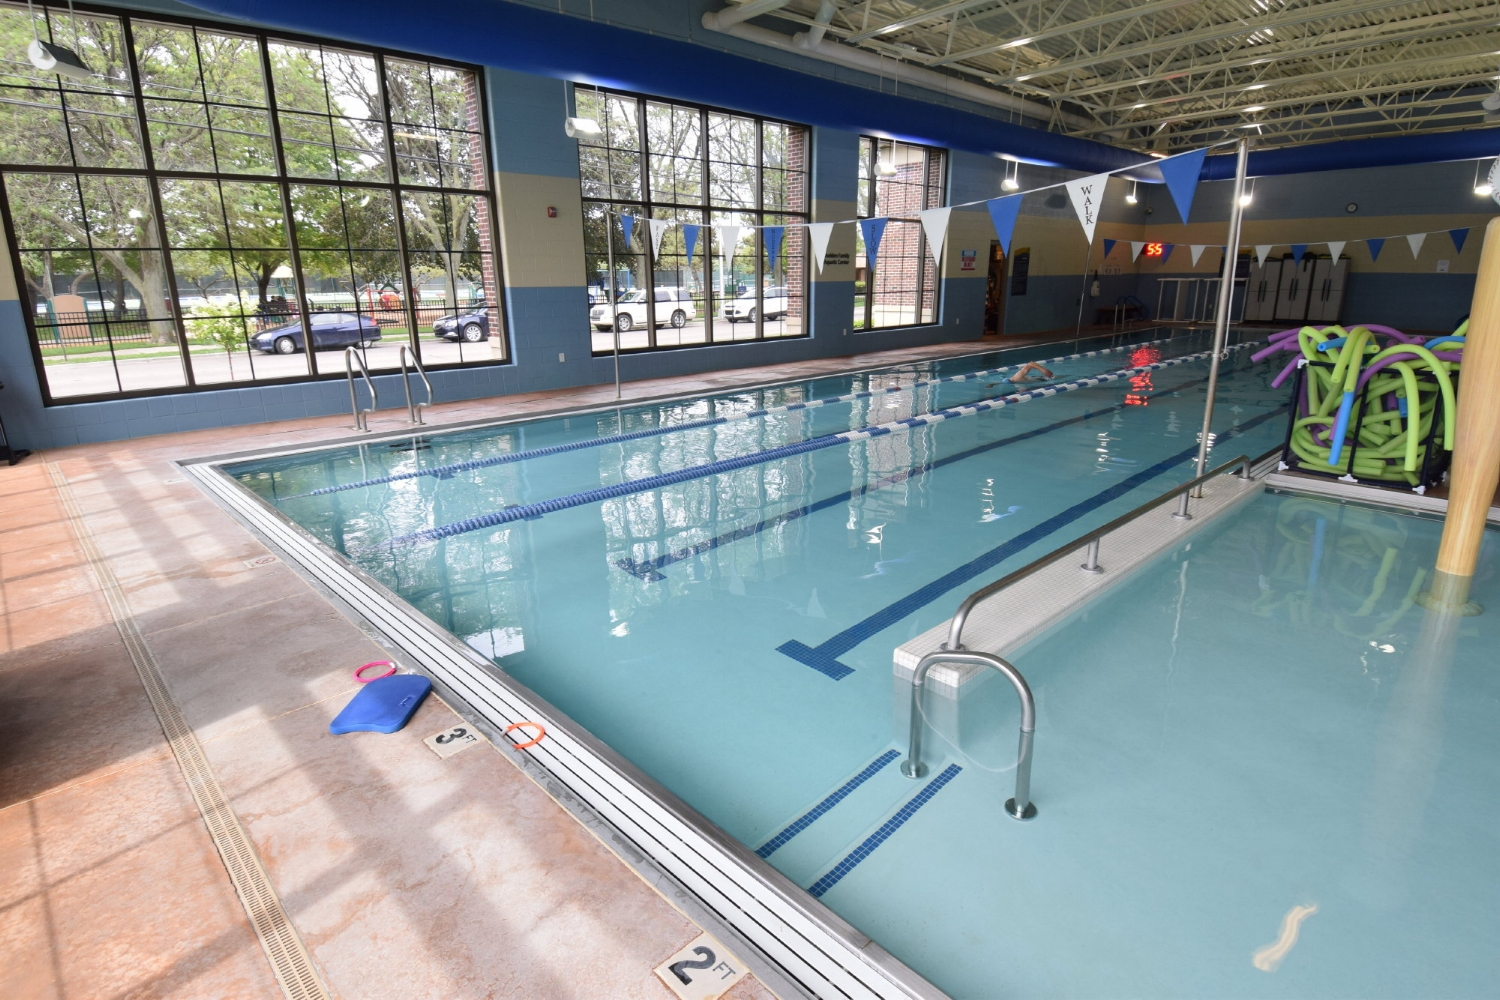 Commercial, Indoor Concrete Pool Deck Before Resurfacing With Spray-Texture Decorative Cement Overlay